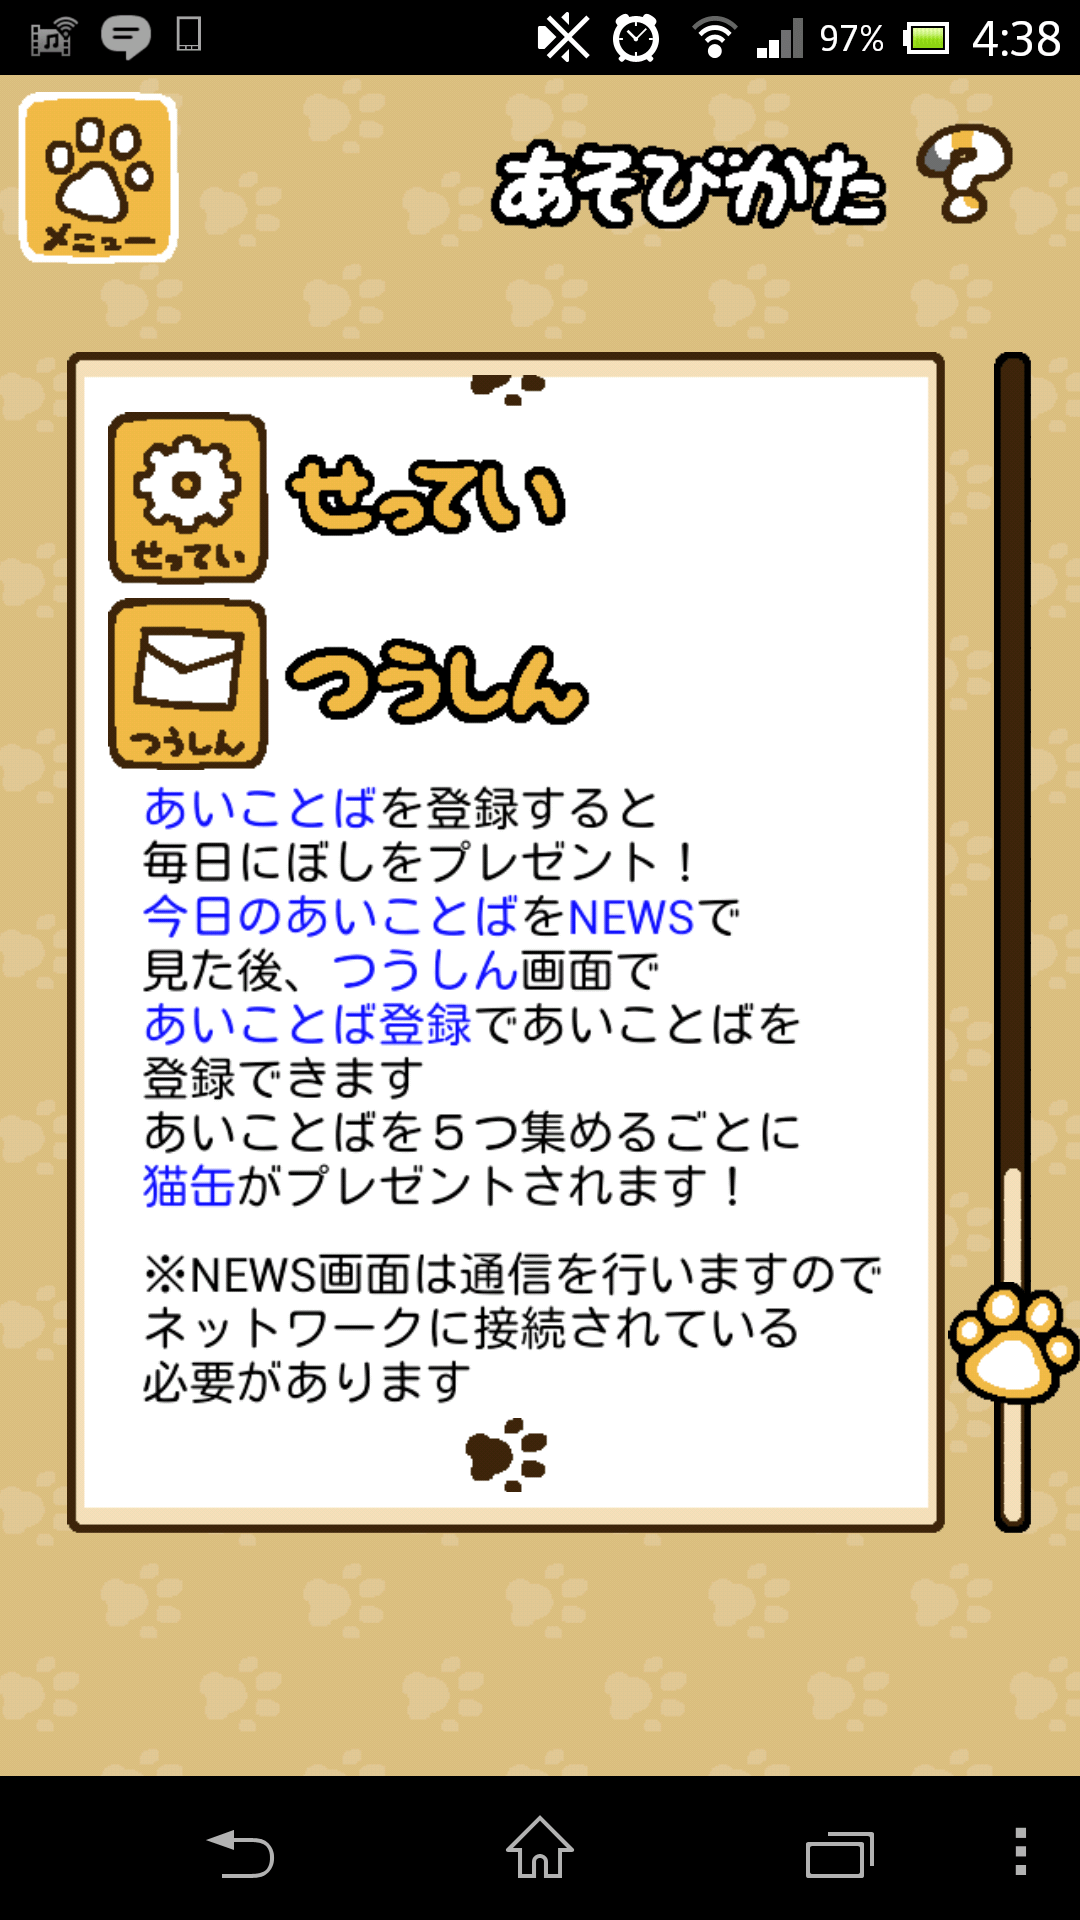 Screenshot_2015-06-24-04-38-58.png